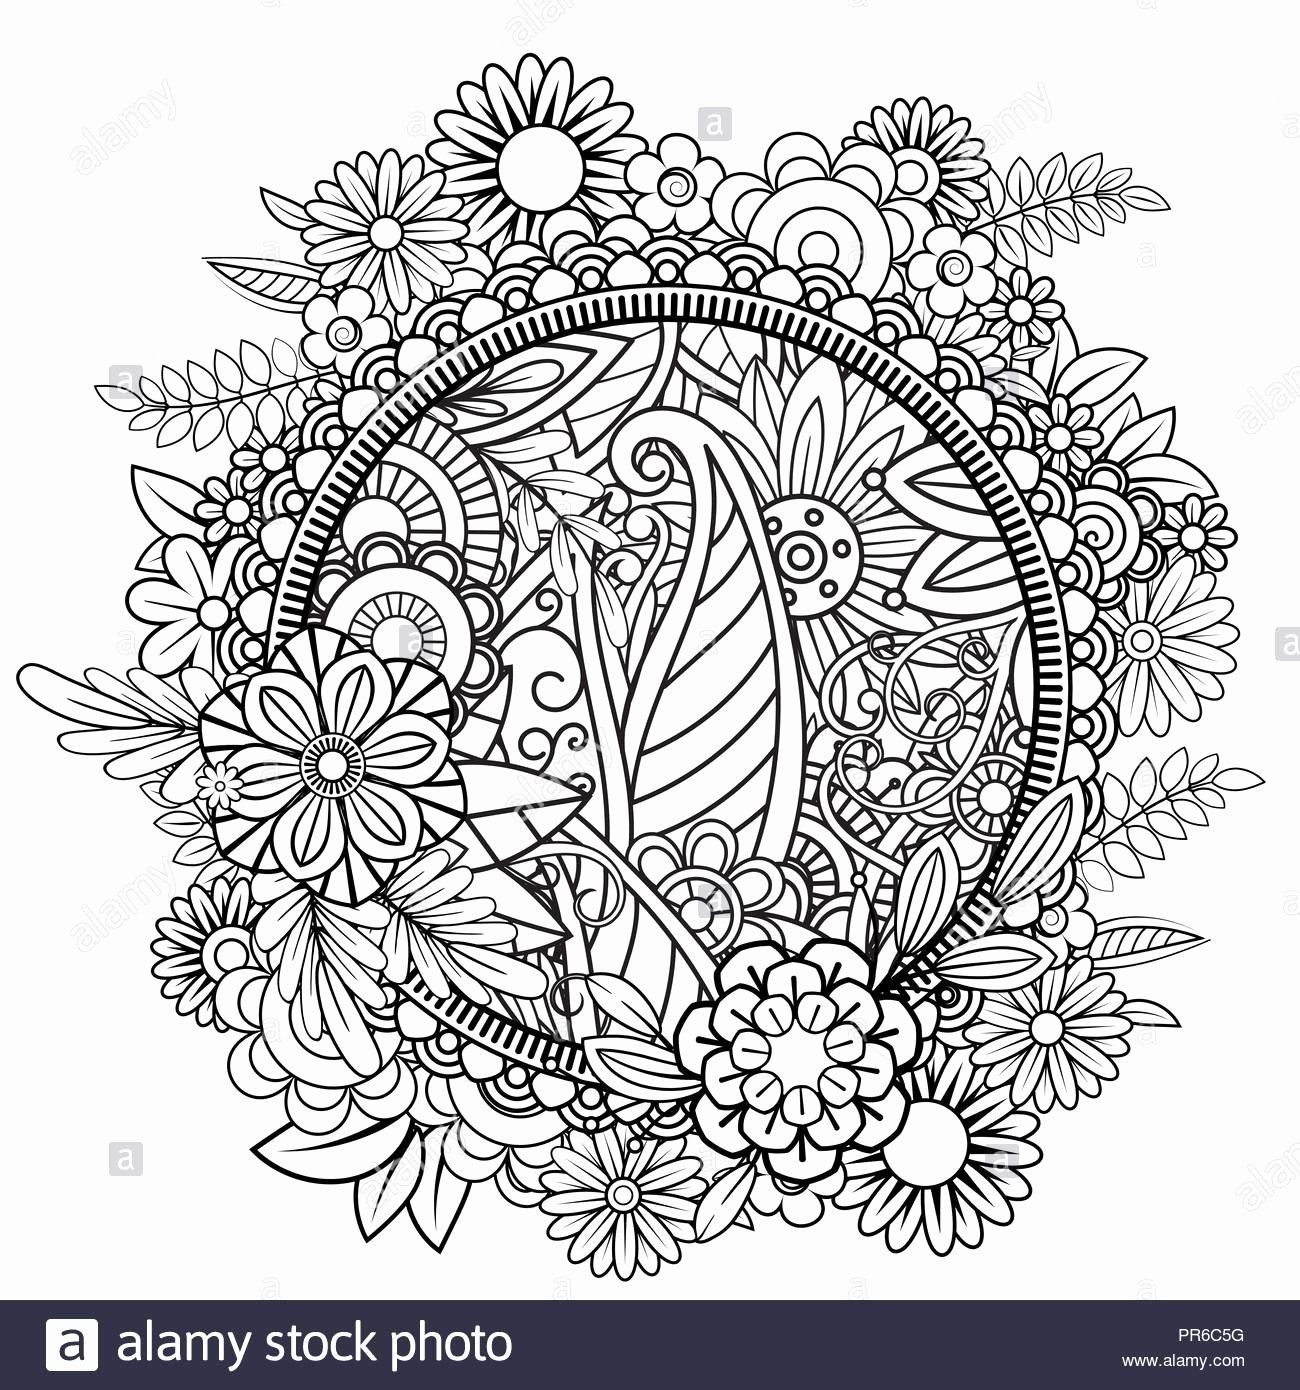 Holiday Wreath Coloring Sheet Inspirational Floral Wreath Coloring